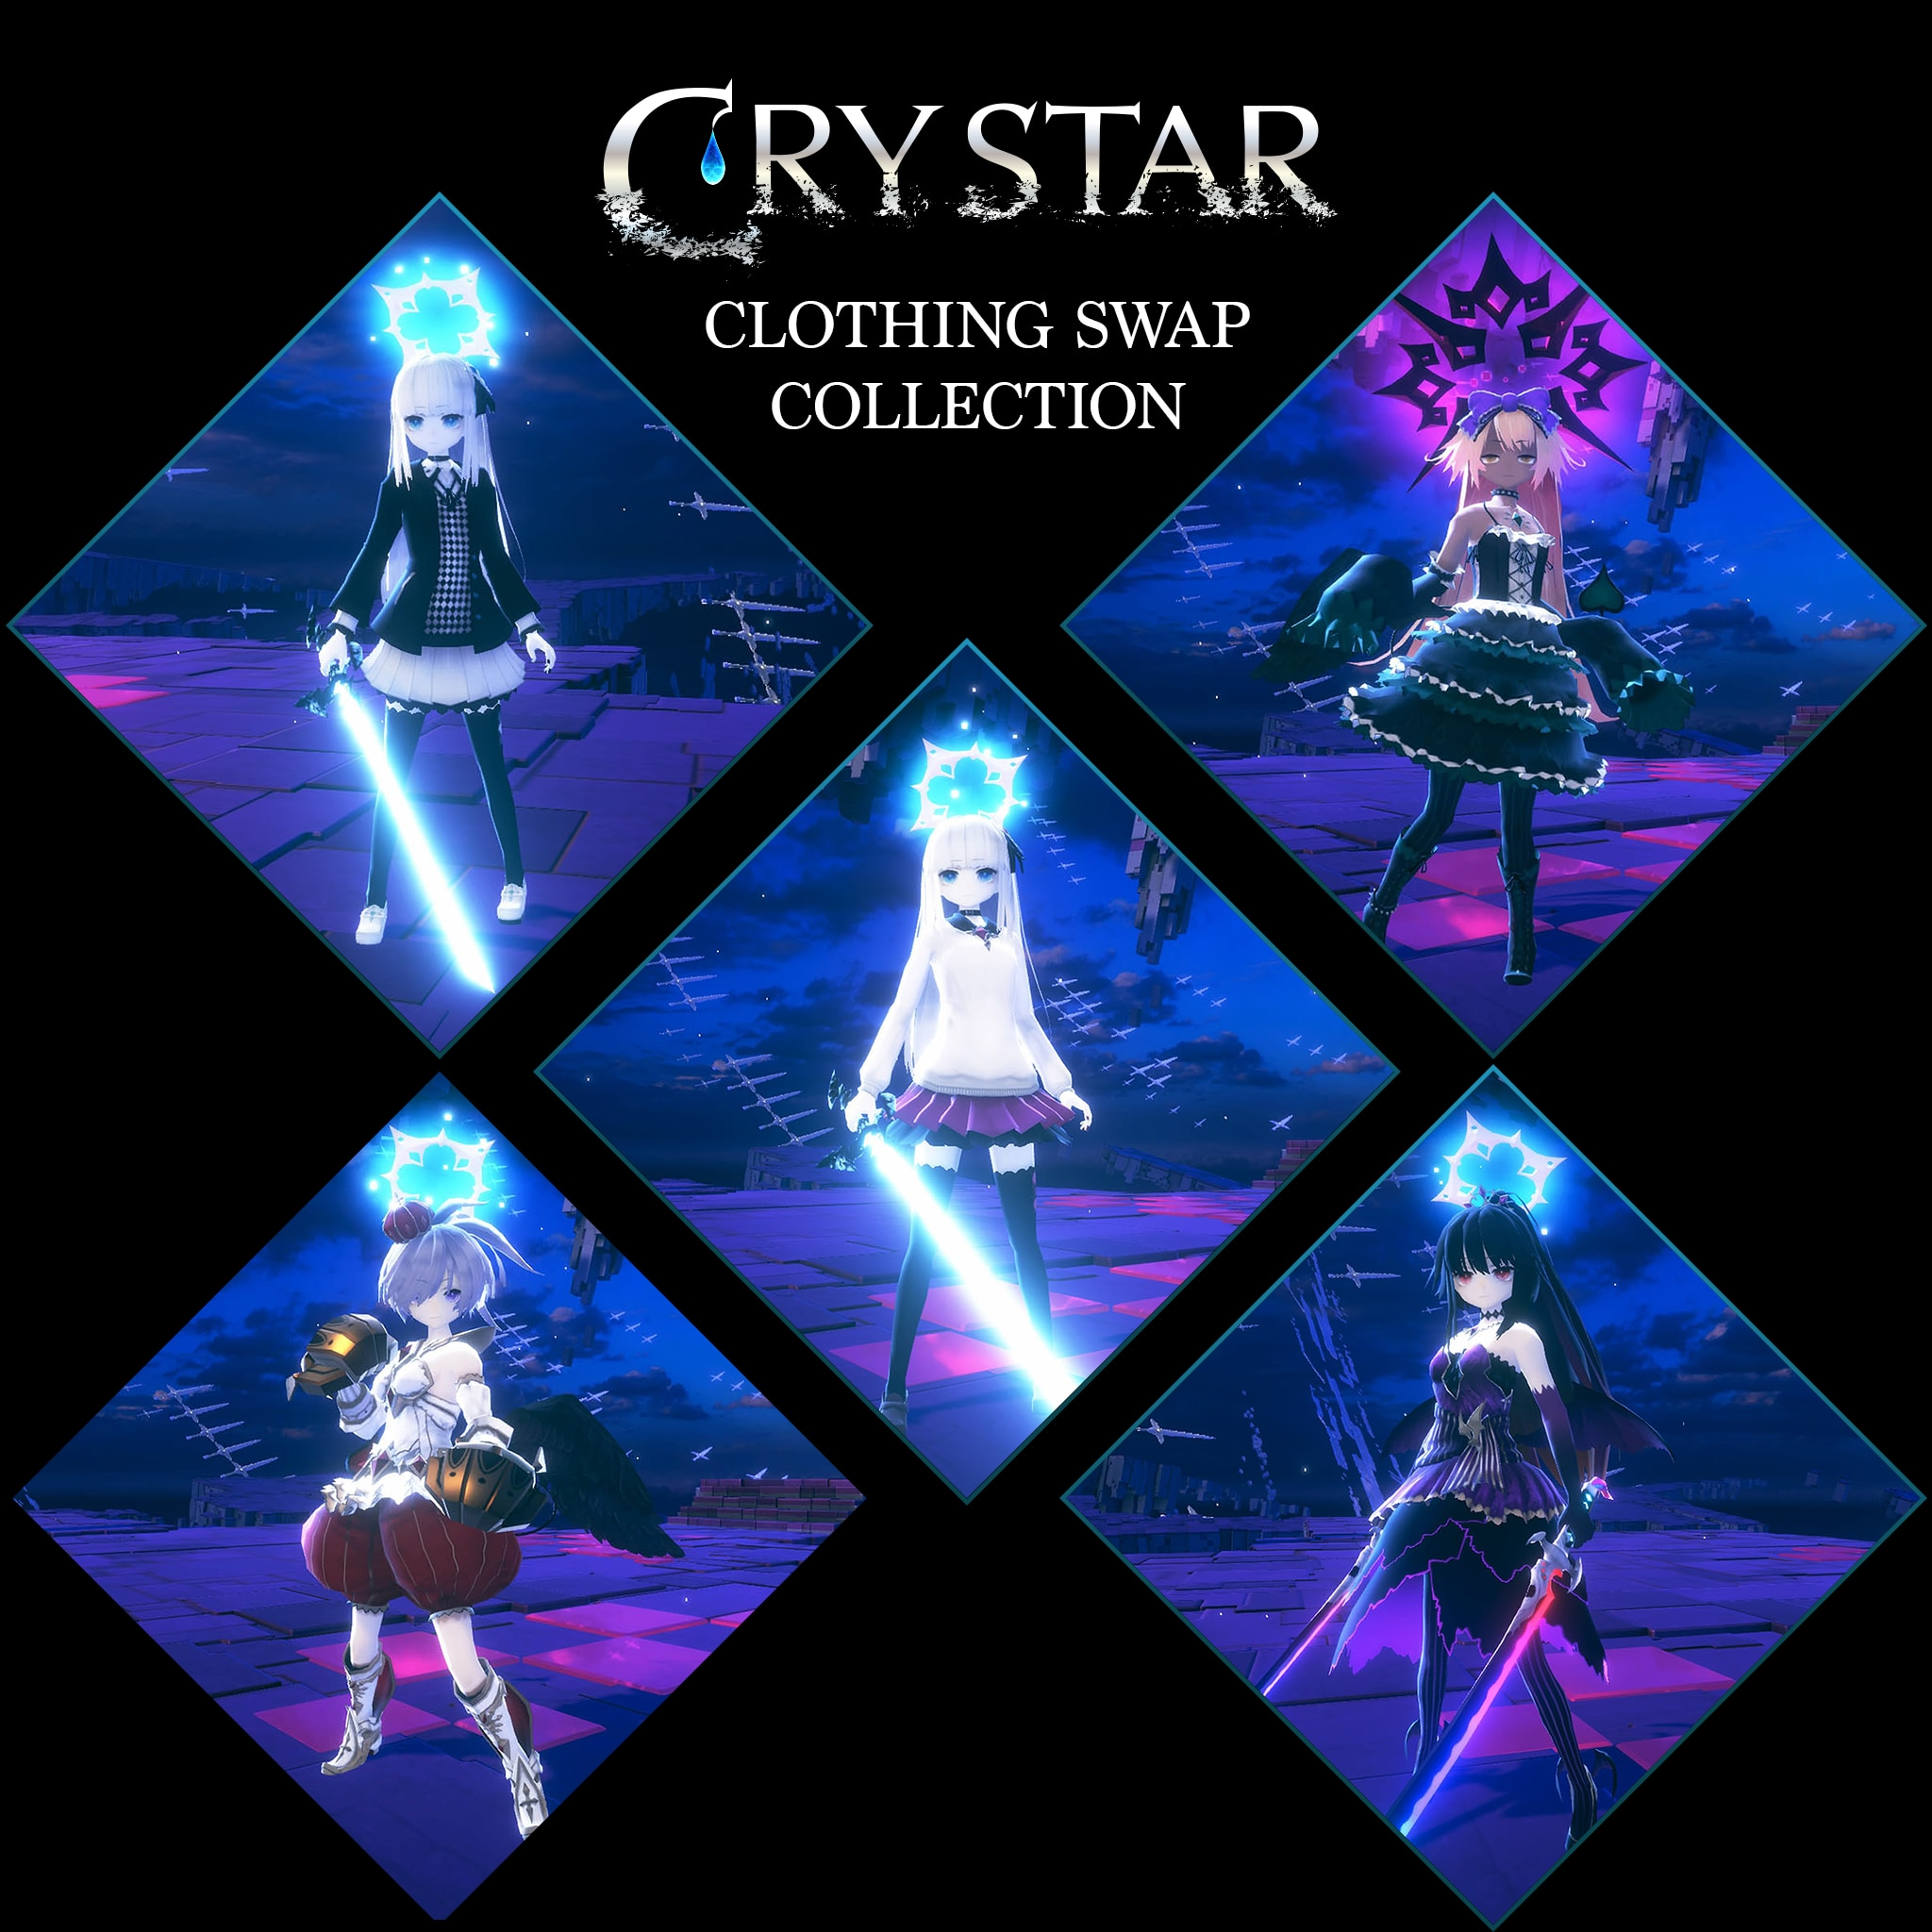 CRYSTAR Clothing Swap Collection